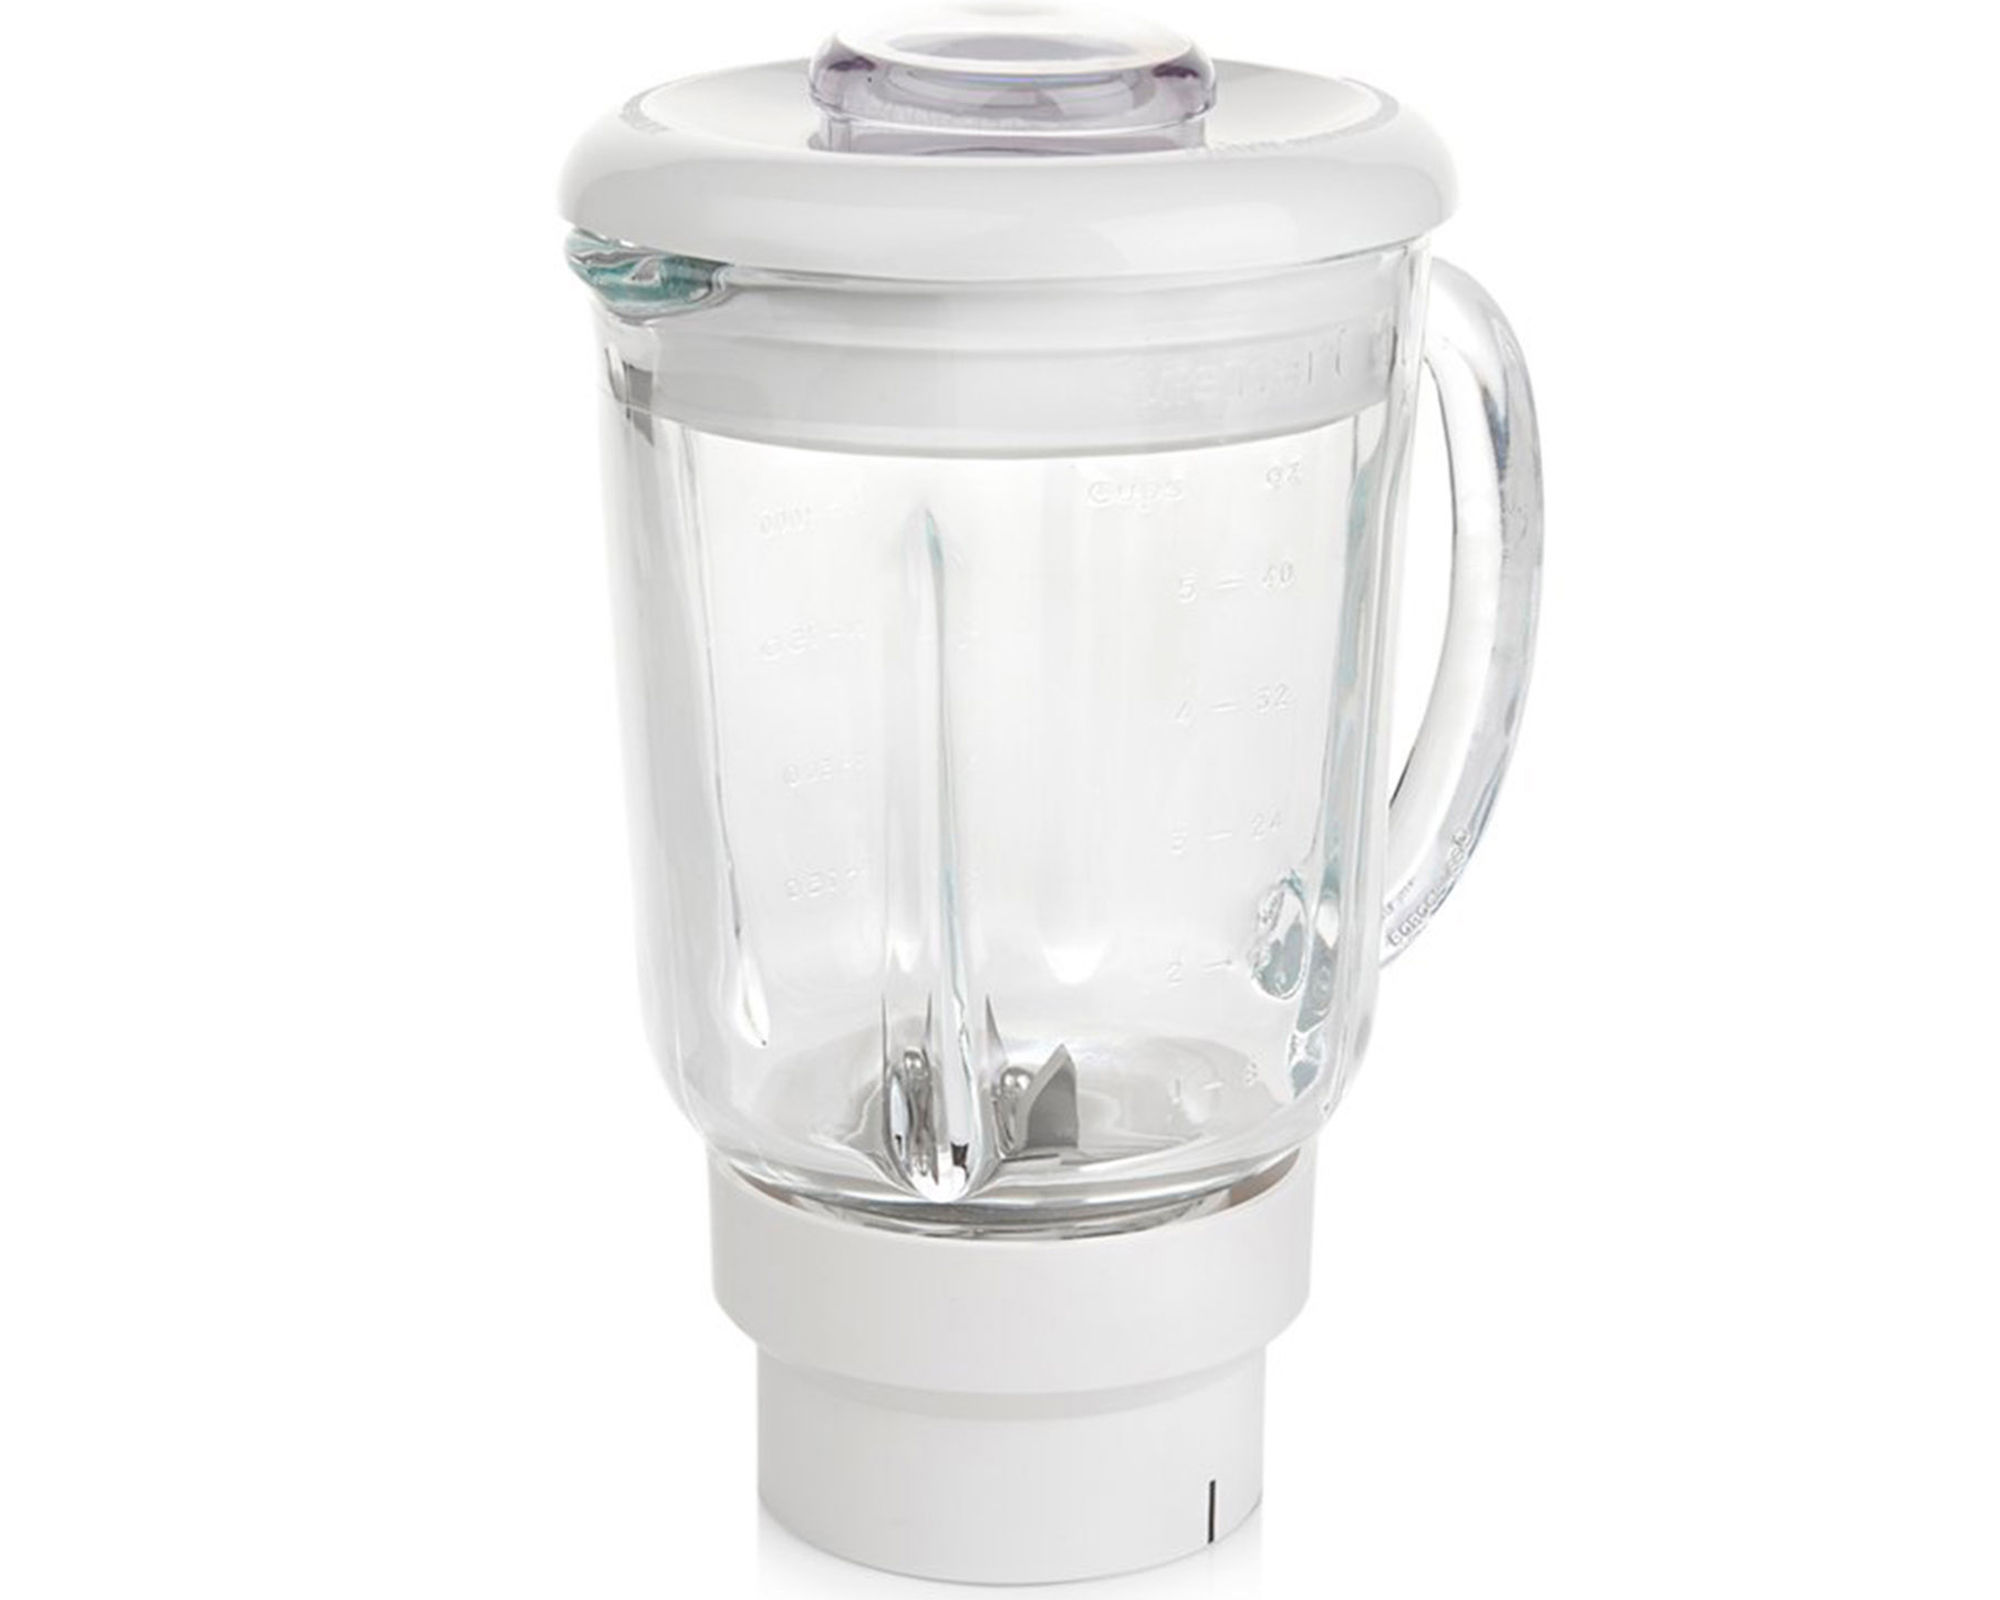 Cuisinart 40-oz. Blender Attachment